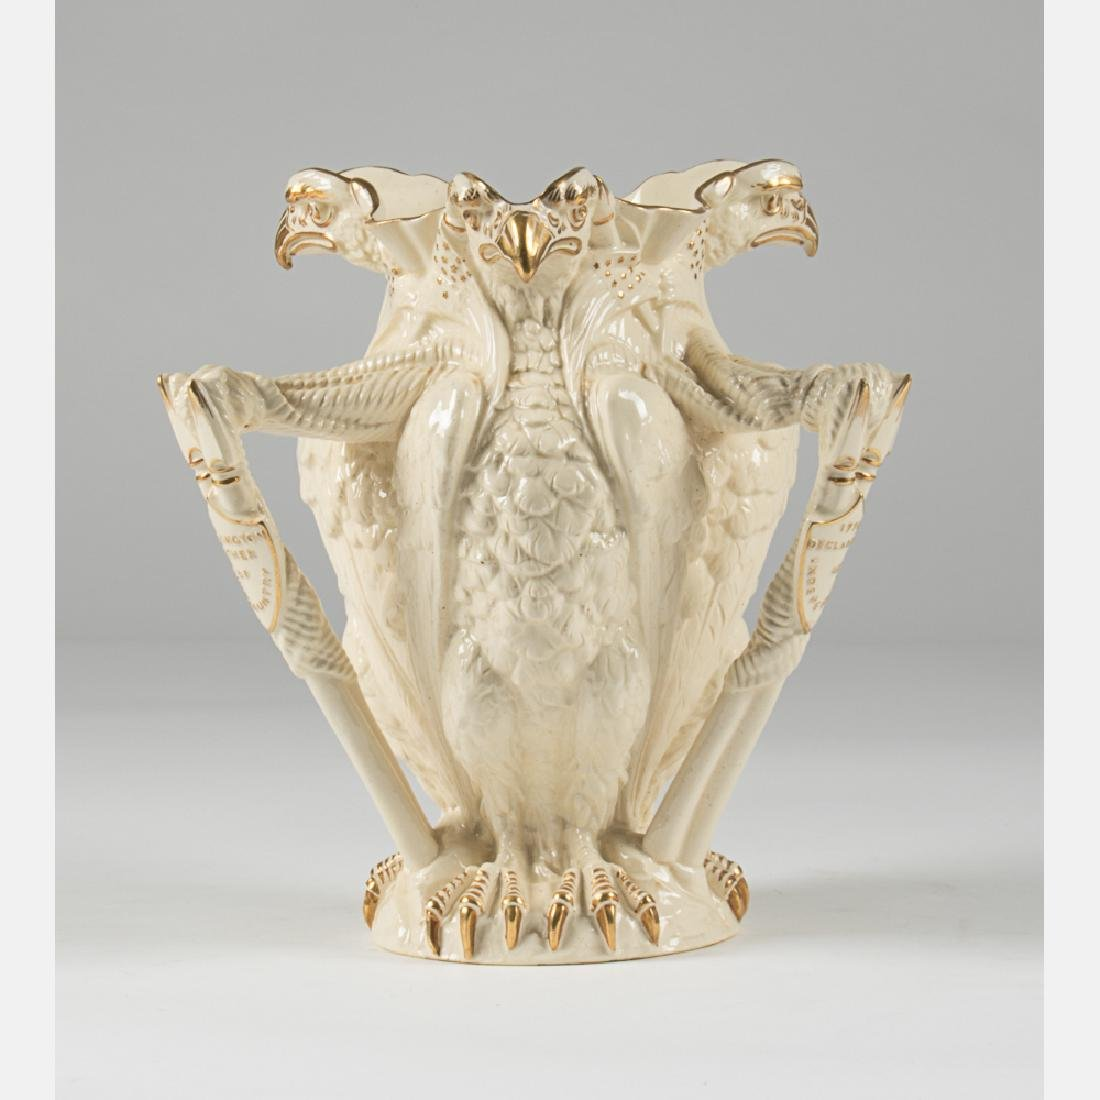 A W.T. Copeland & Sons Porcelain Eagle Form Vase with